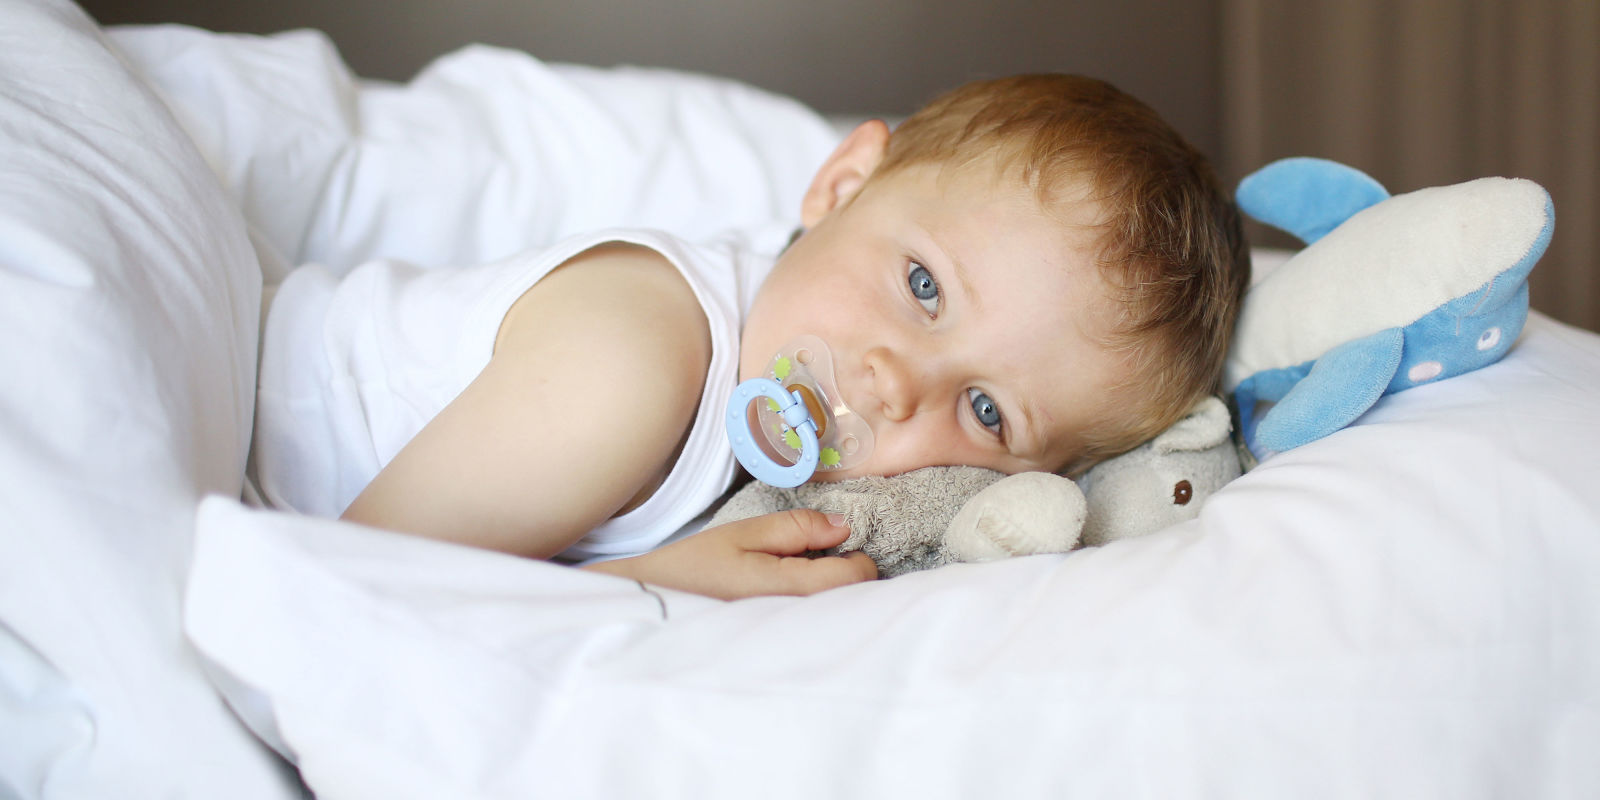 How to manage your child's chickenpox or measles